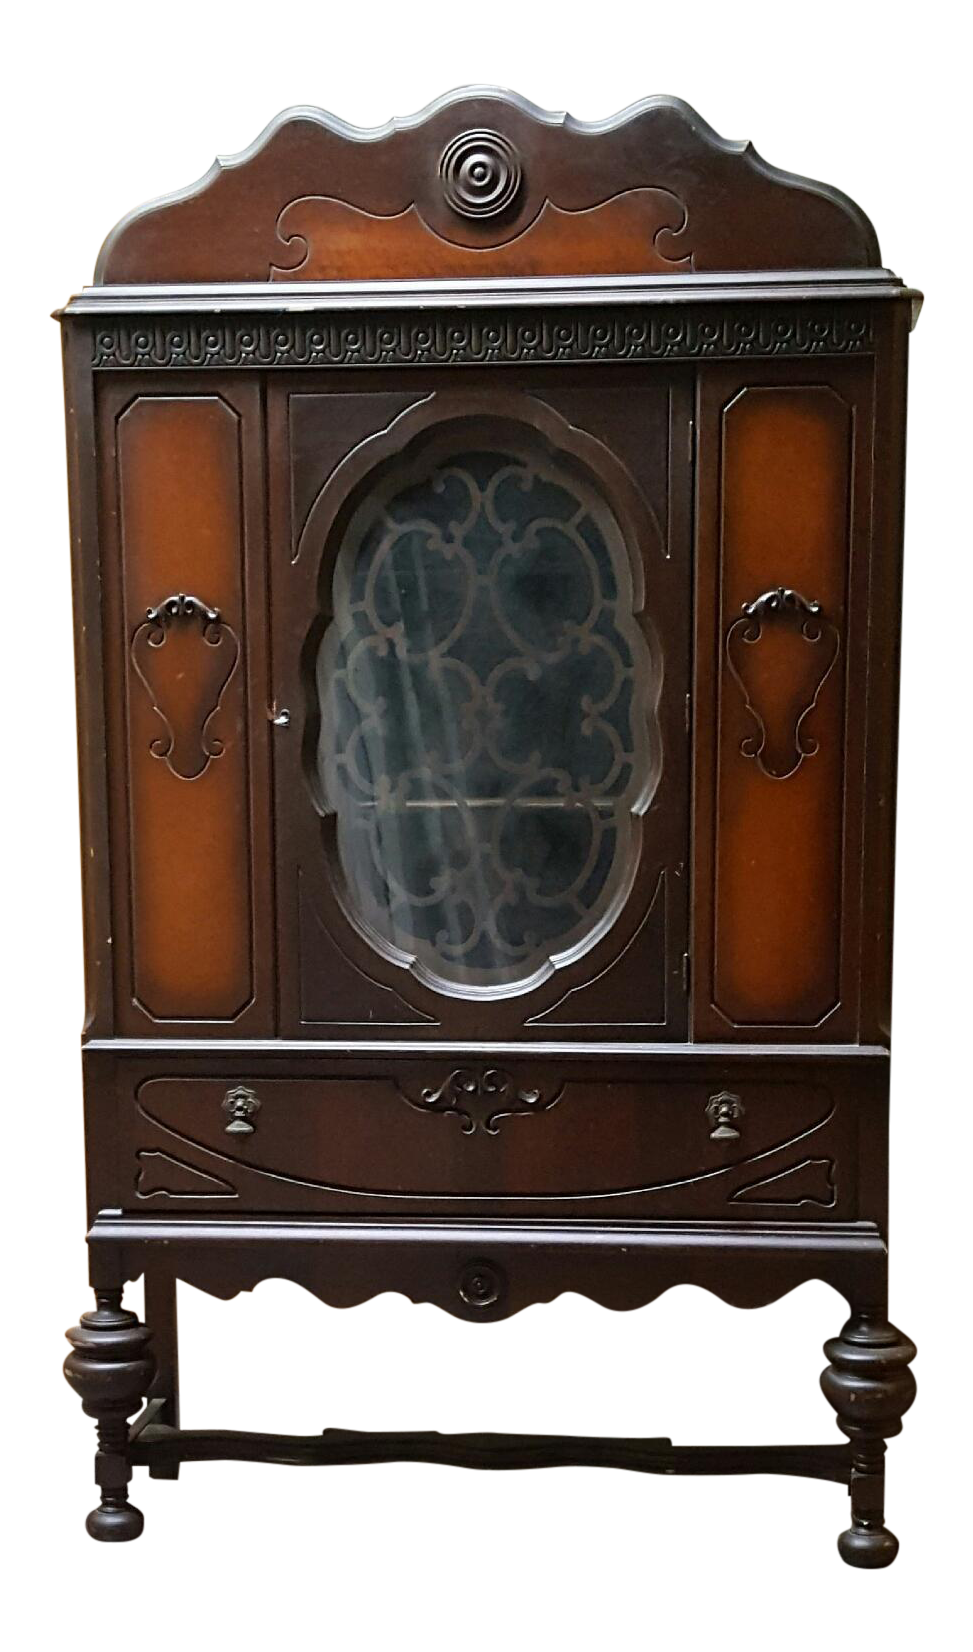 Antique Art Deco Waterfall Armoire - Vintage Waterfall Hutch China Cabinet  | Chairish - Antique Art Deco Waterfall Armoire - Vintage Waterfall Hutch China